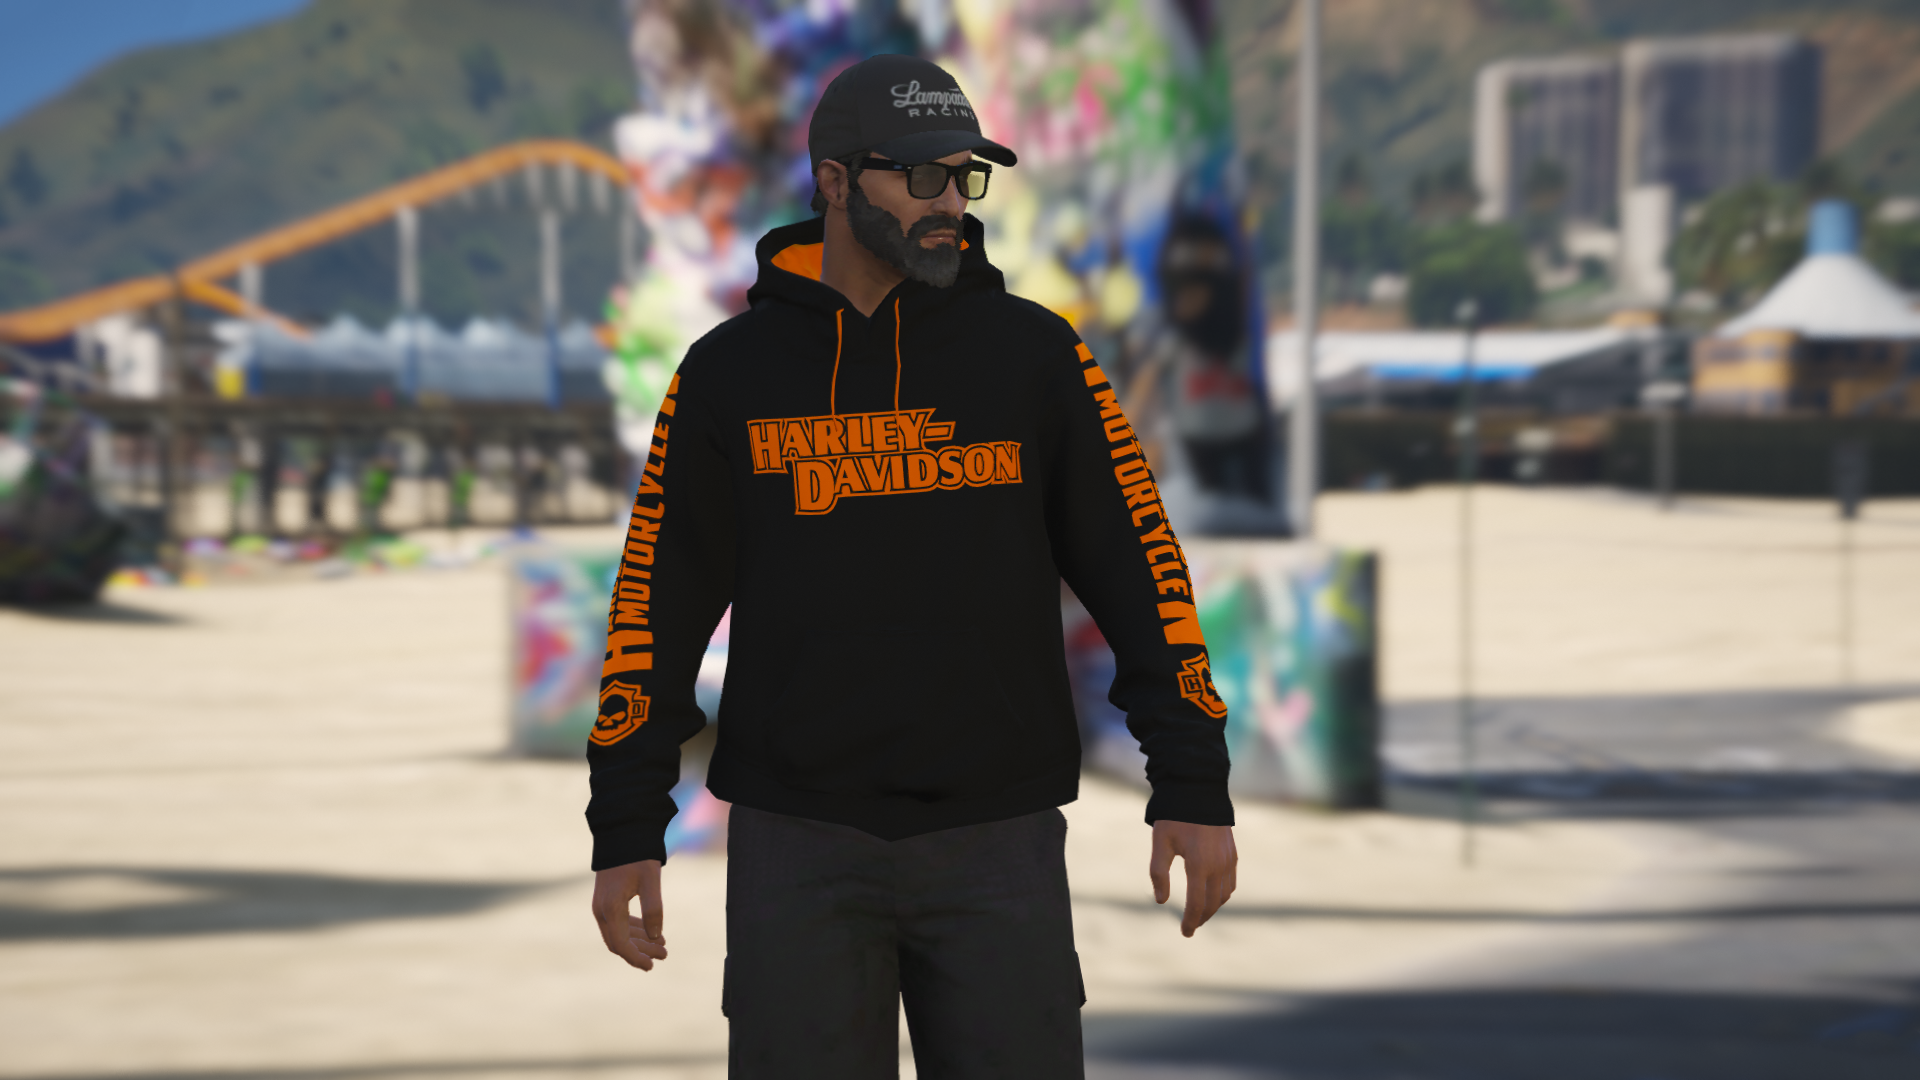 HARLEY DAVIDSON HOODIE FOR MP MALE [FIVEM READY] 1.0